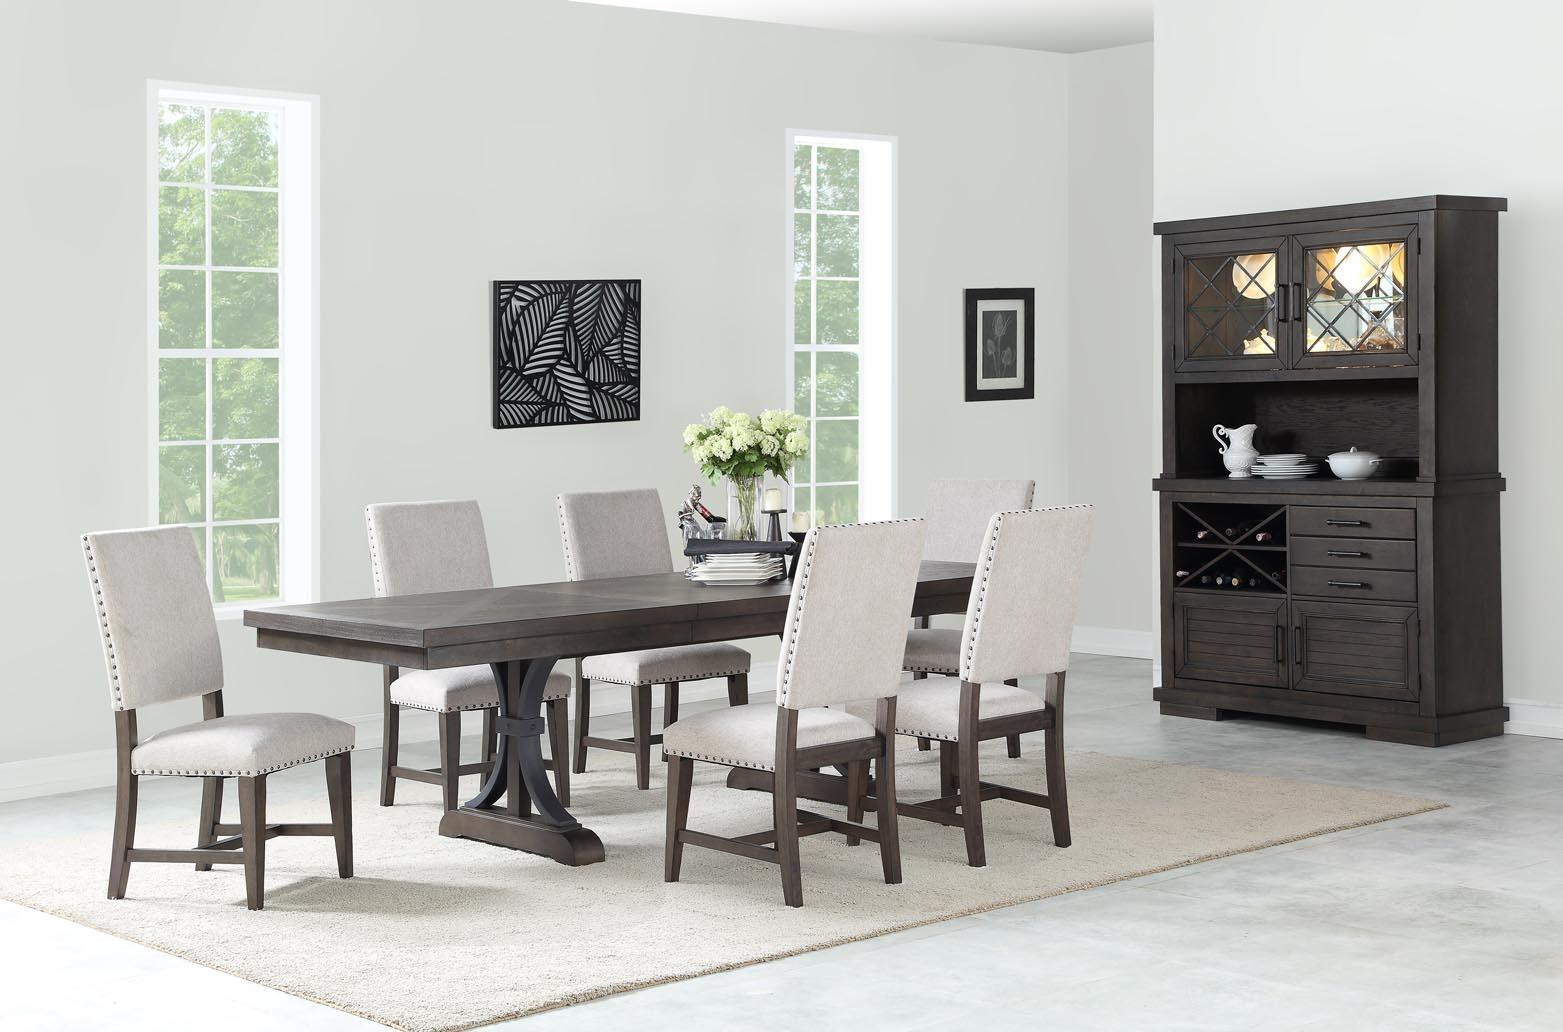 Jayden Table and 6 Chairs by HH at Walker's Furniture